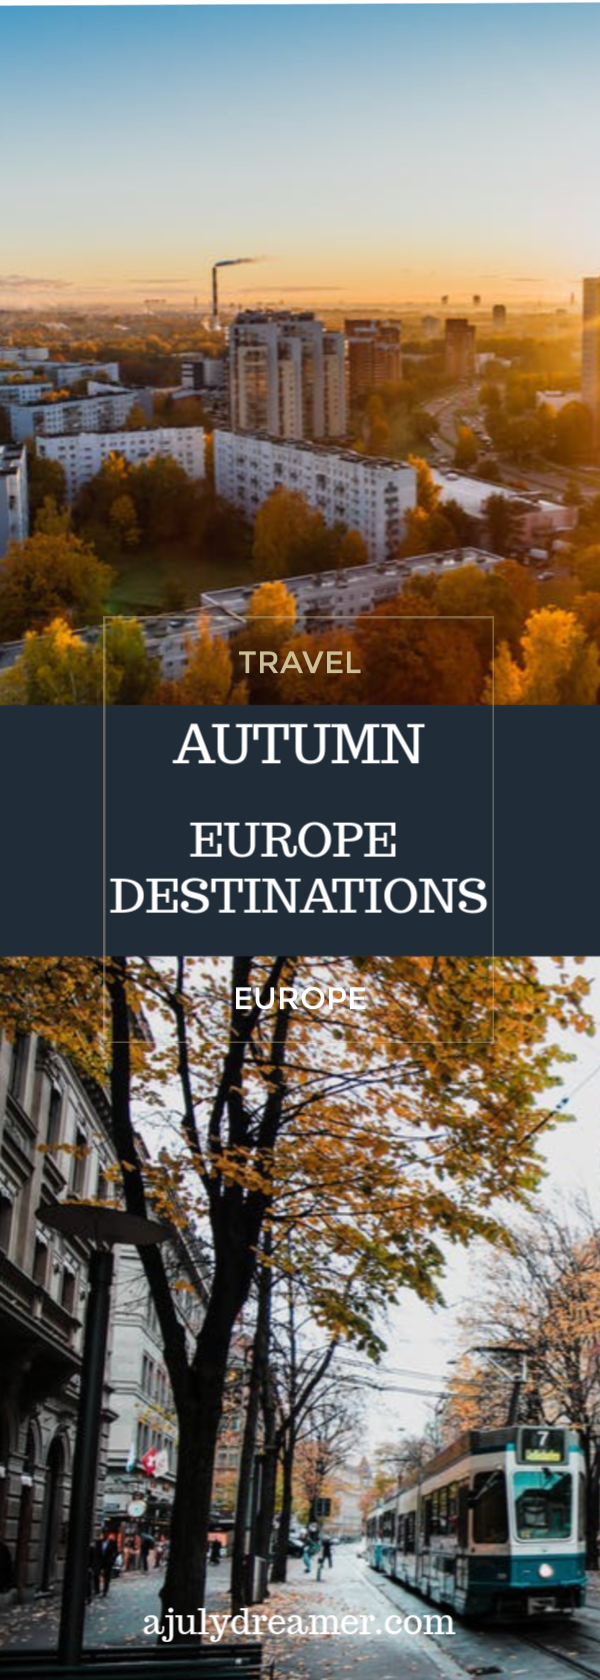 Best Autumn Travel Destinations in Europe